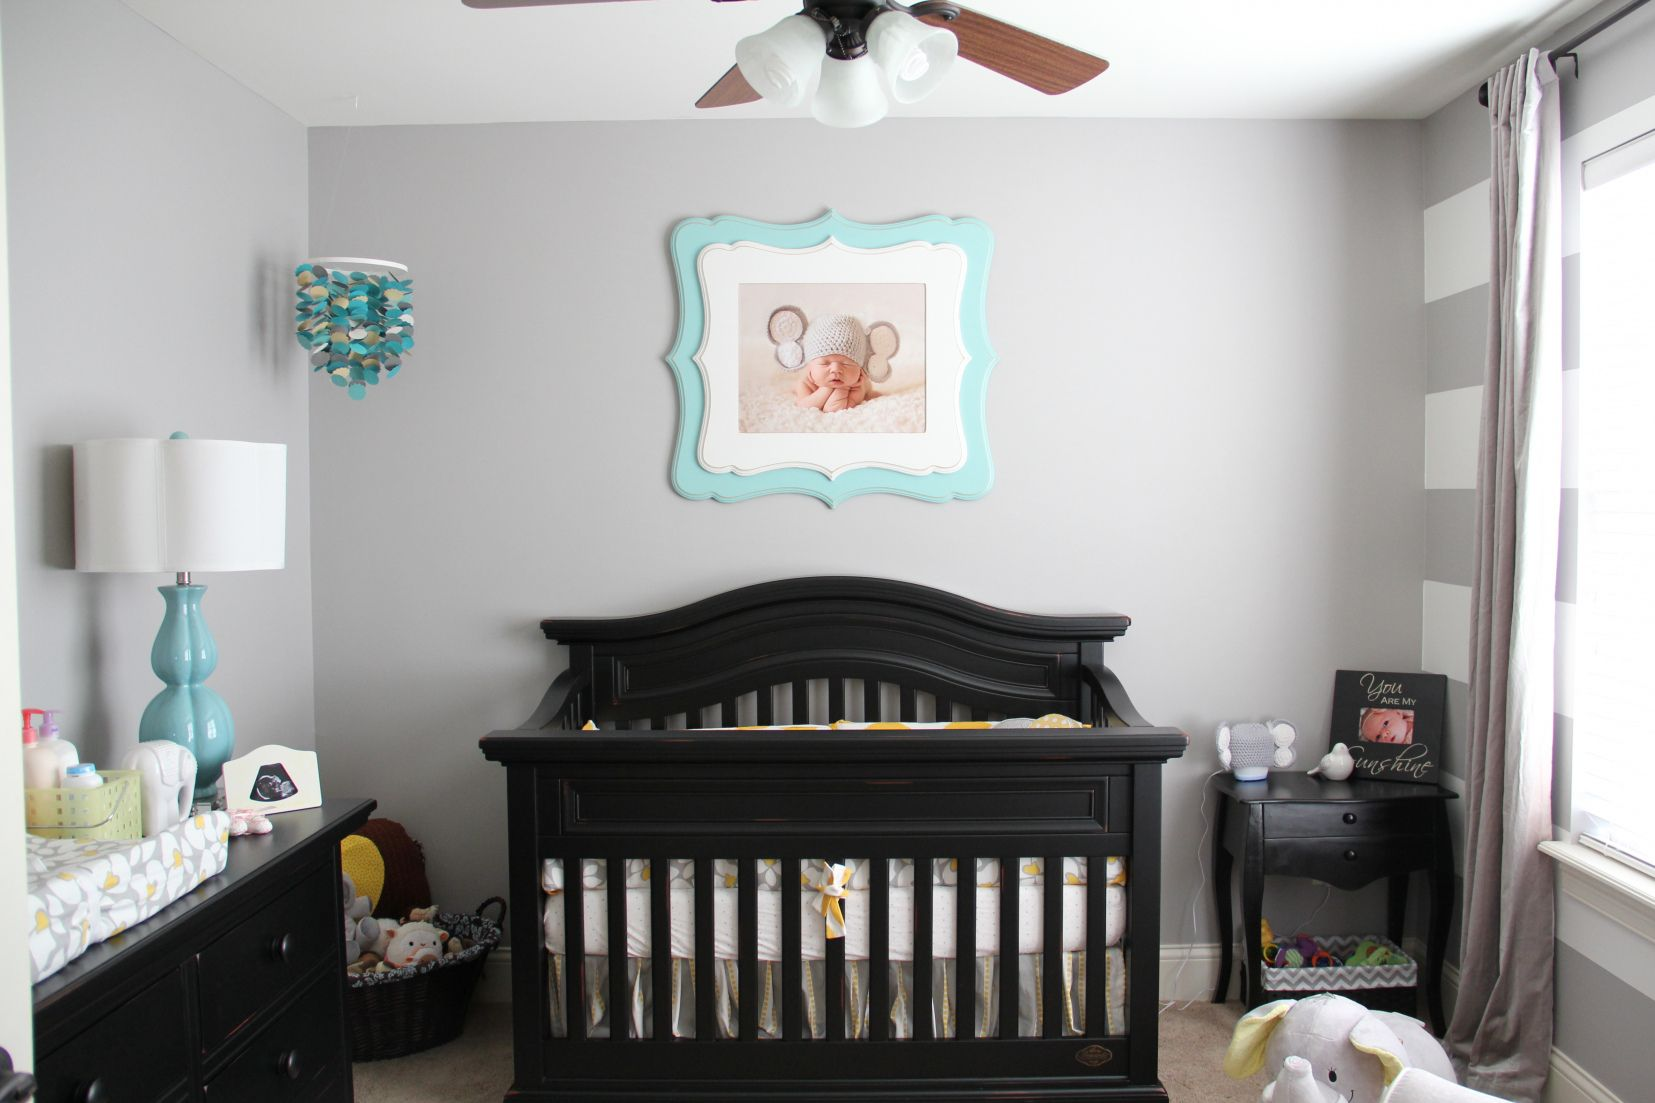 50 neutral paint colors for baby room organization ideas for